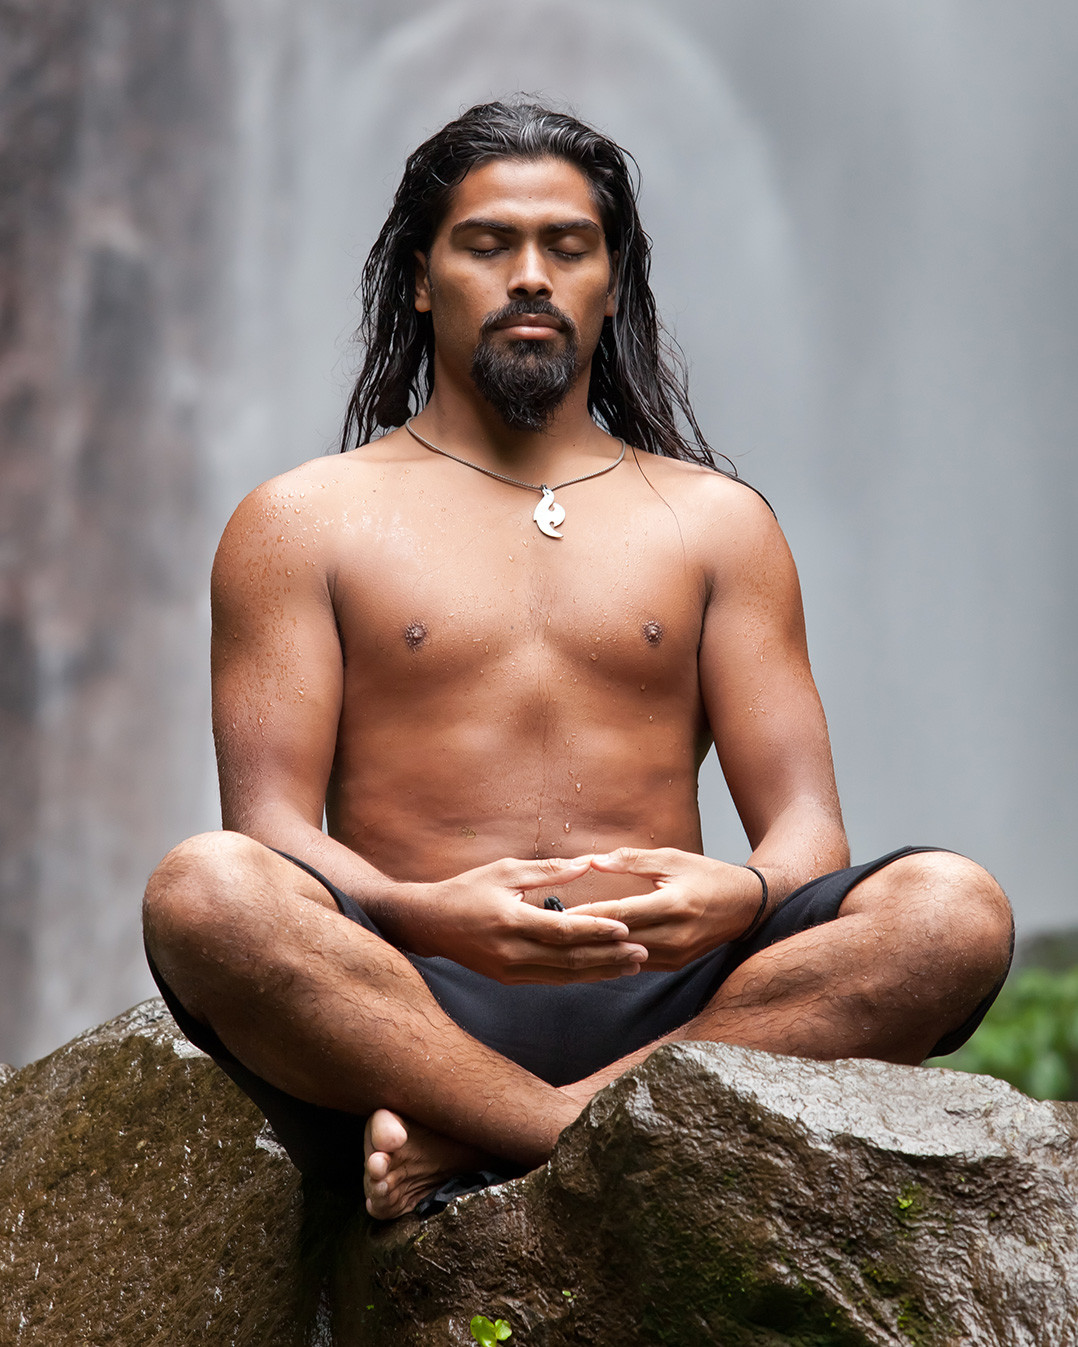 A young man meditating in nature